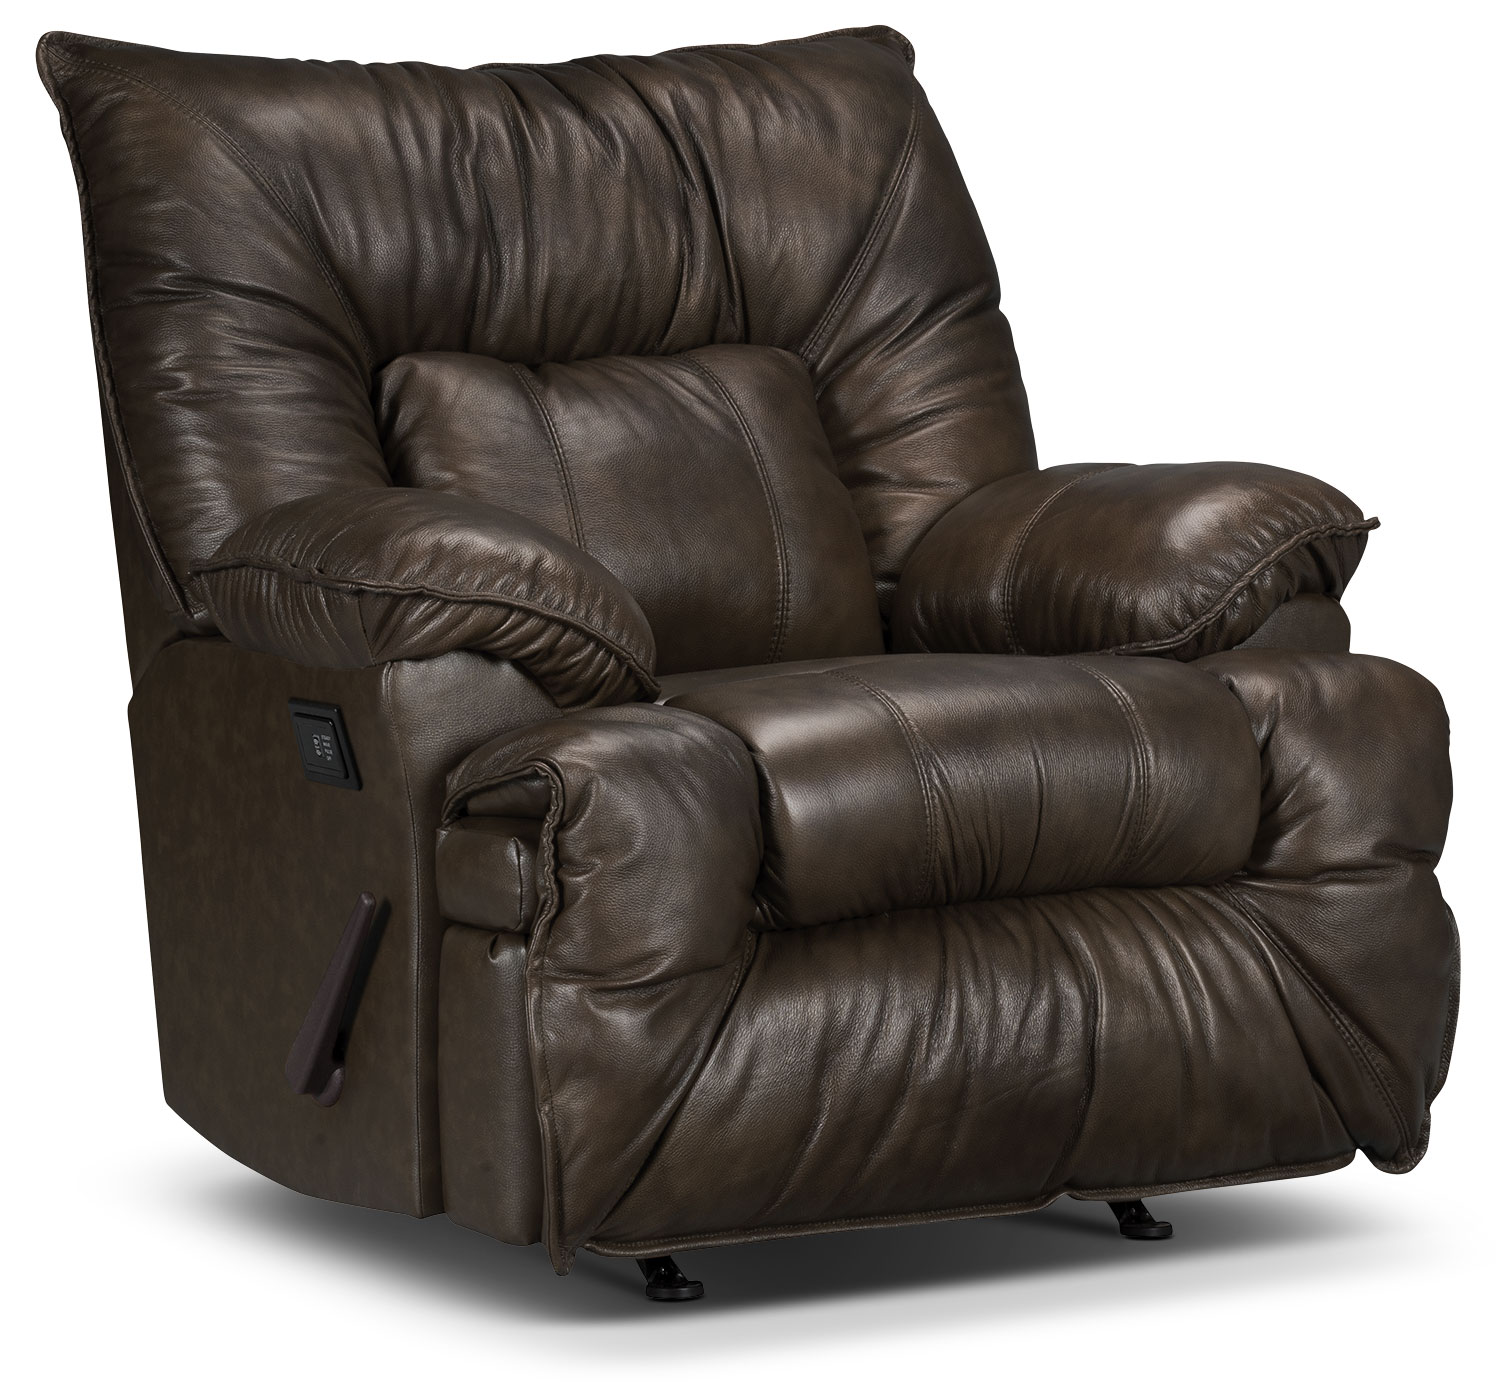 Designed2B Recliner 7726 Leather-Look Fabric Massage Chair - Chocolate